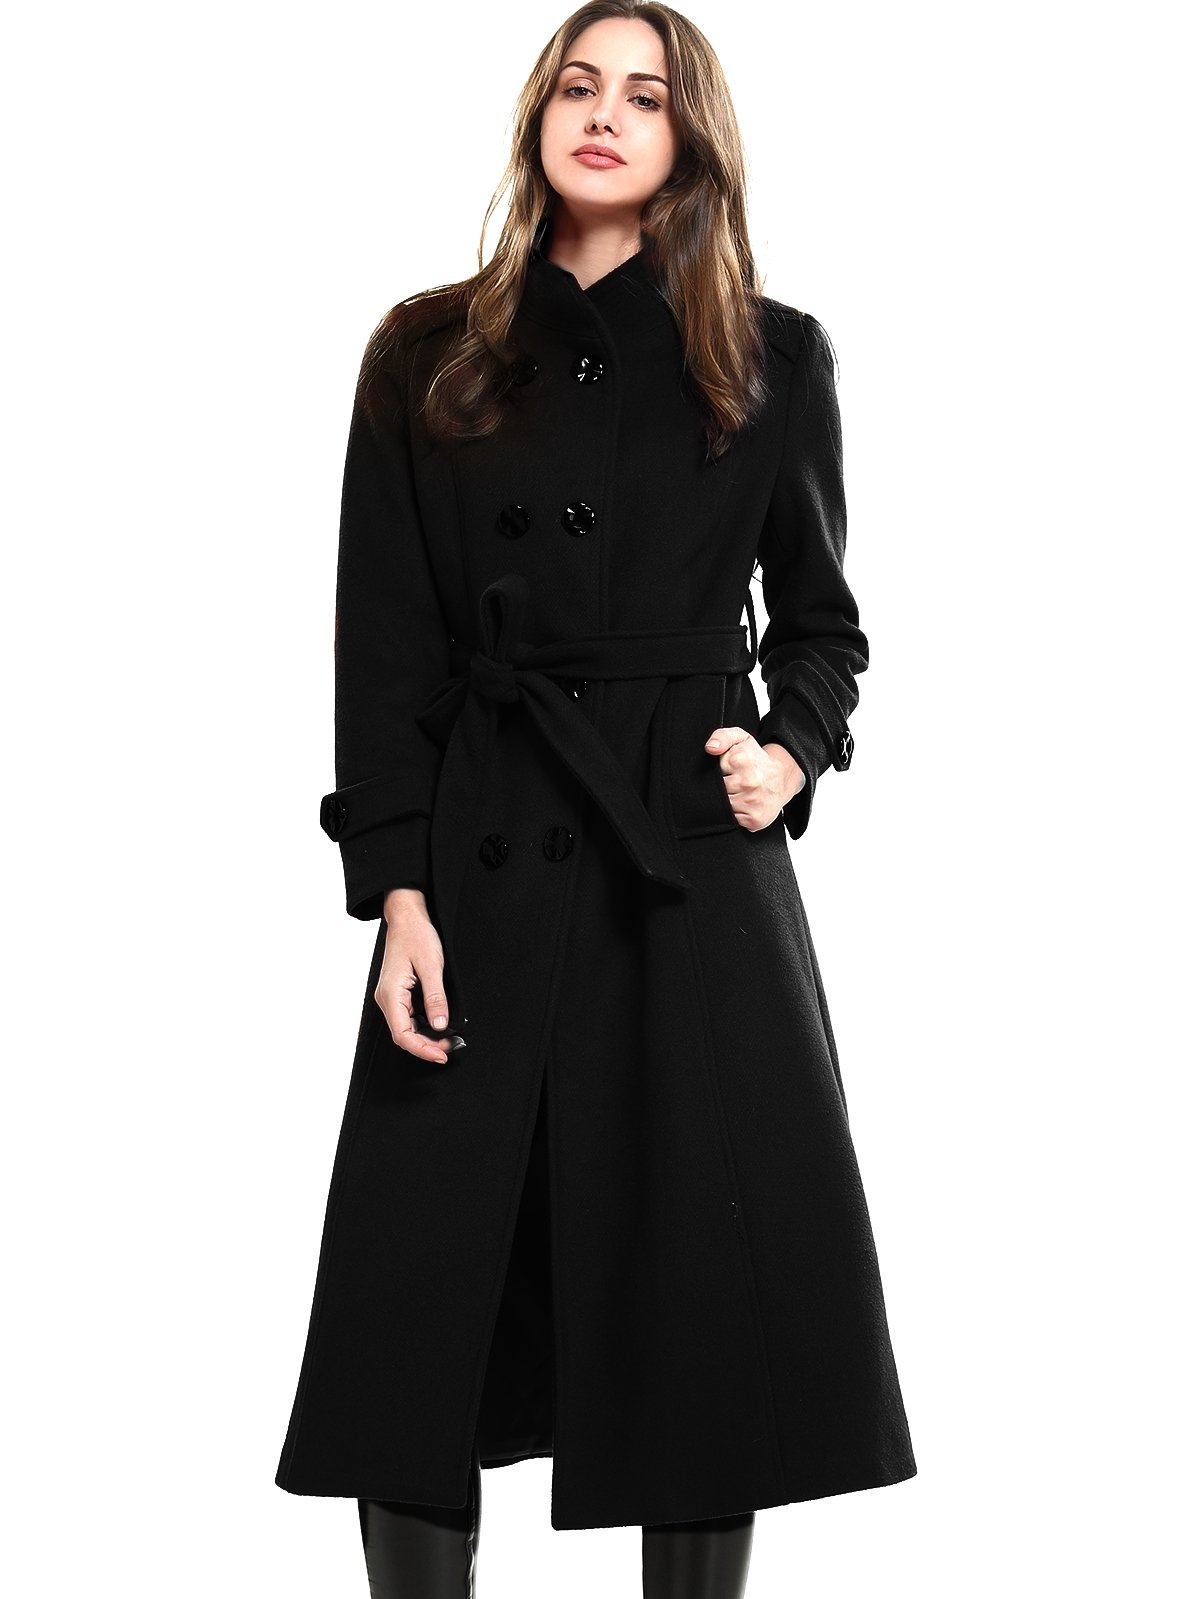 Escalier Women's Wool Trench Coat Double-Breasted Jacket With Belts Black M by Escalier